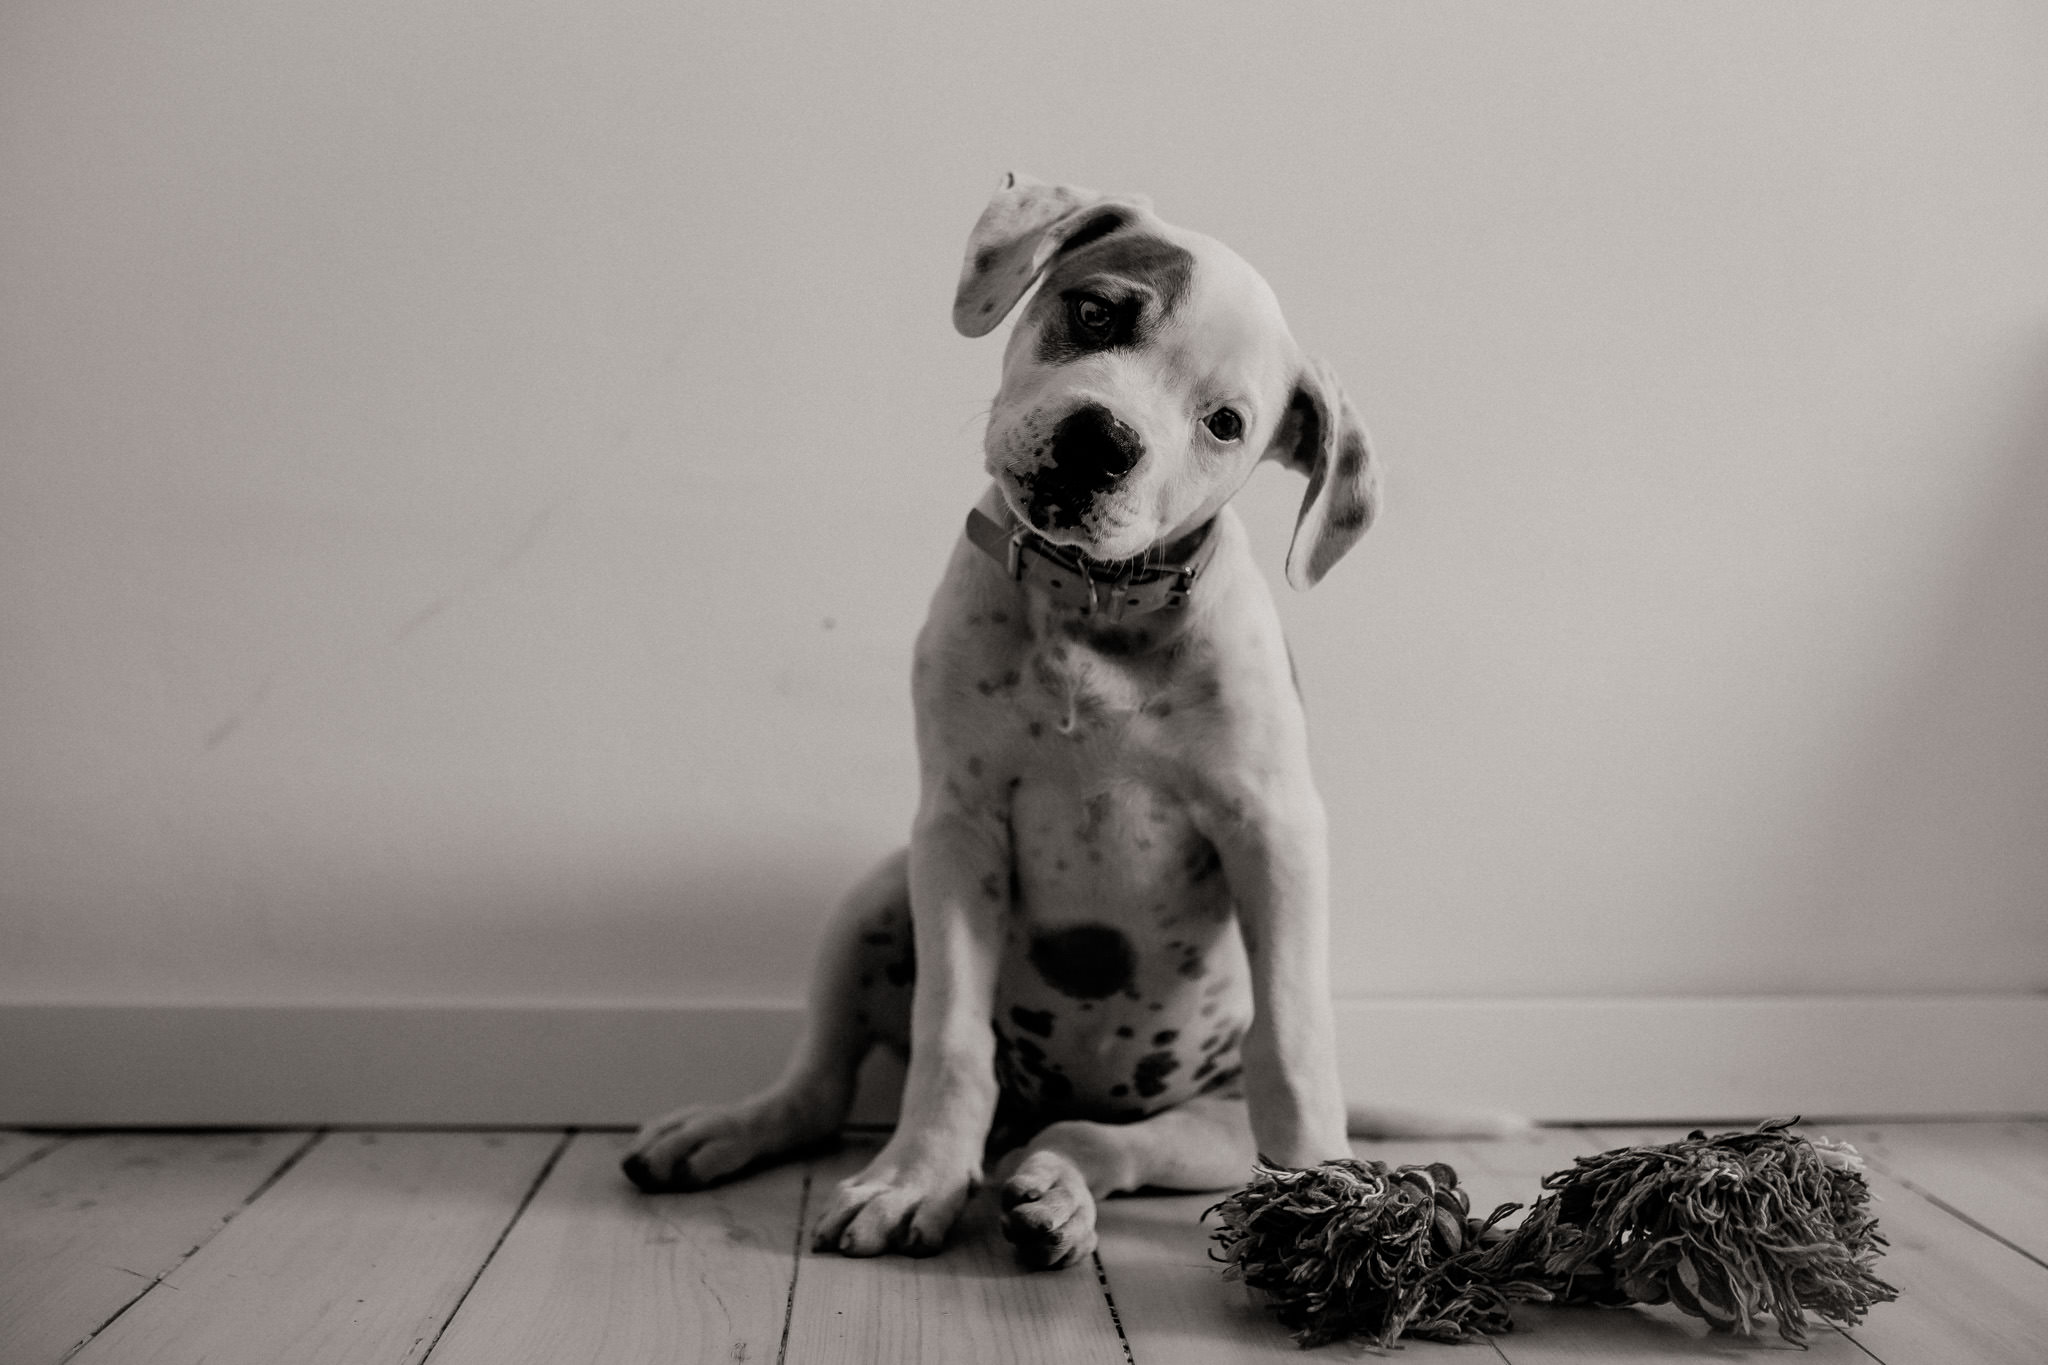 Dog Photographer Germany American Bulldog Puppy 8 Maria Luise